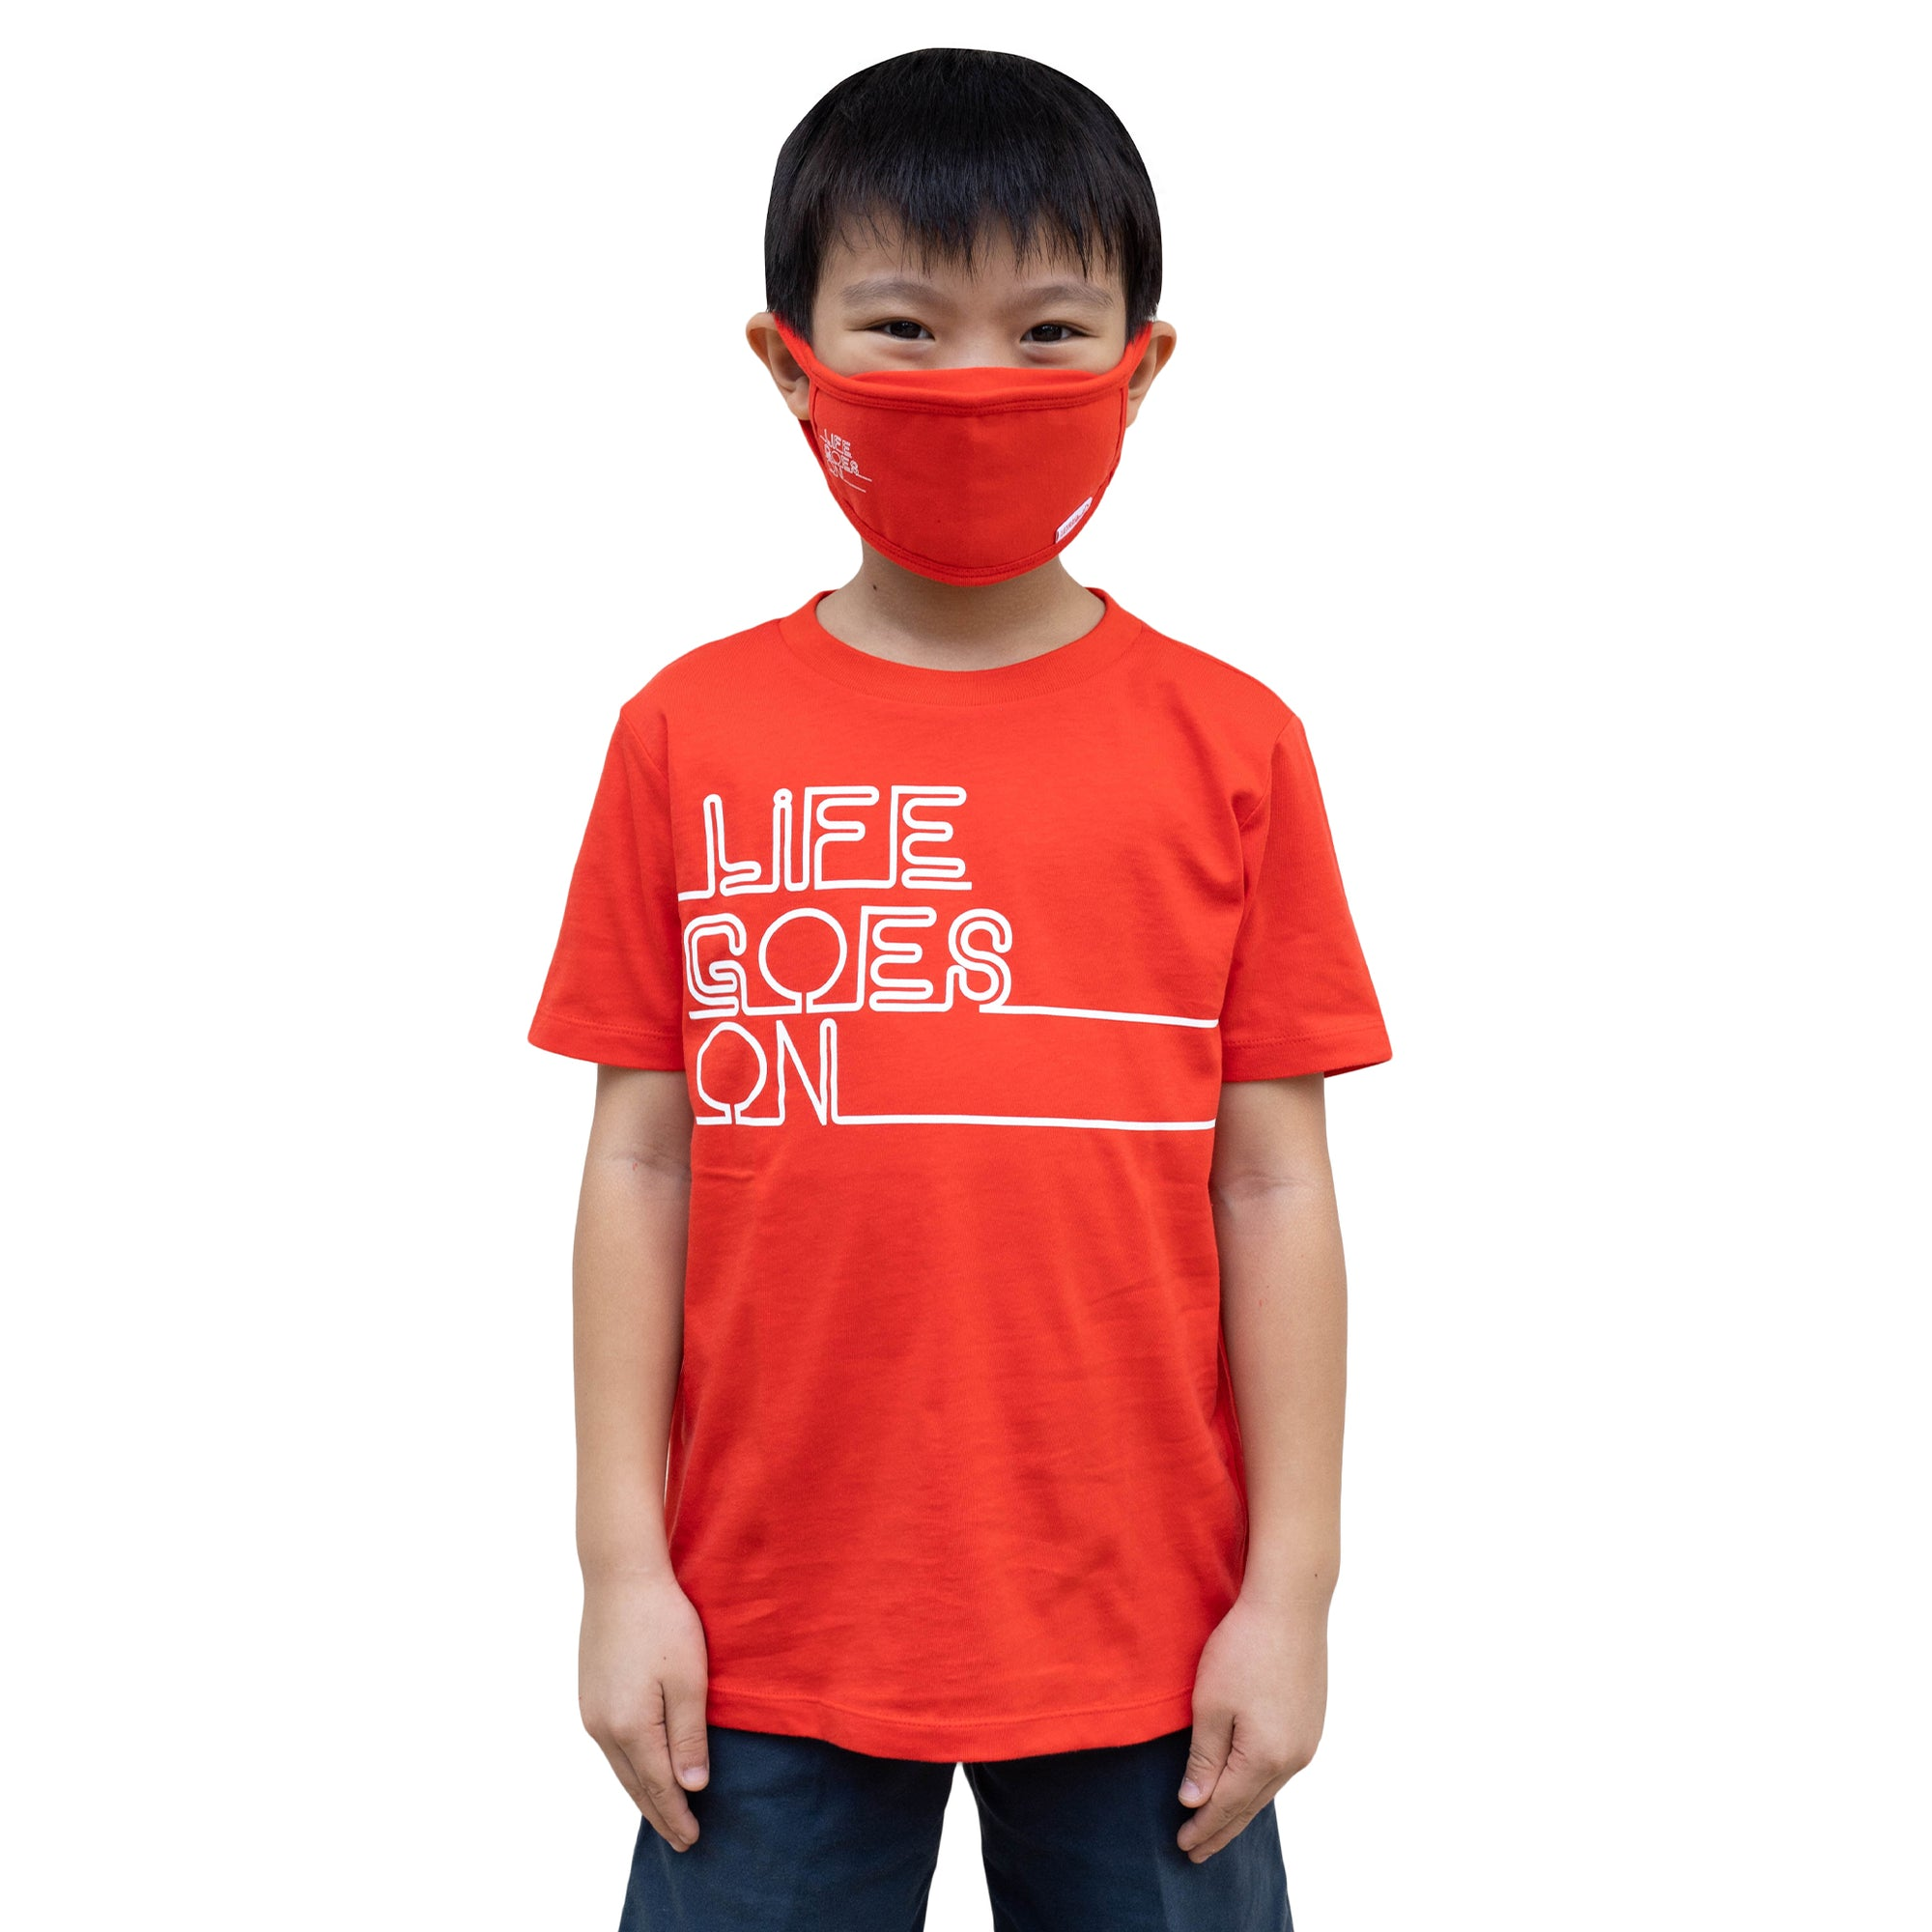 ULTRA A Anti-Bacterial Tee + 3-Ply Anti-Bacterial Mask Co-Ord Set (Life Goes On - Kids)